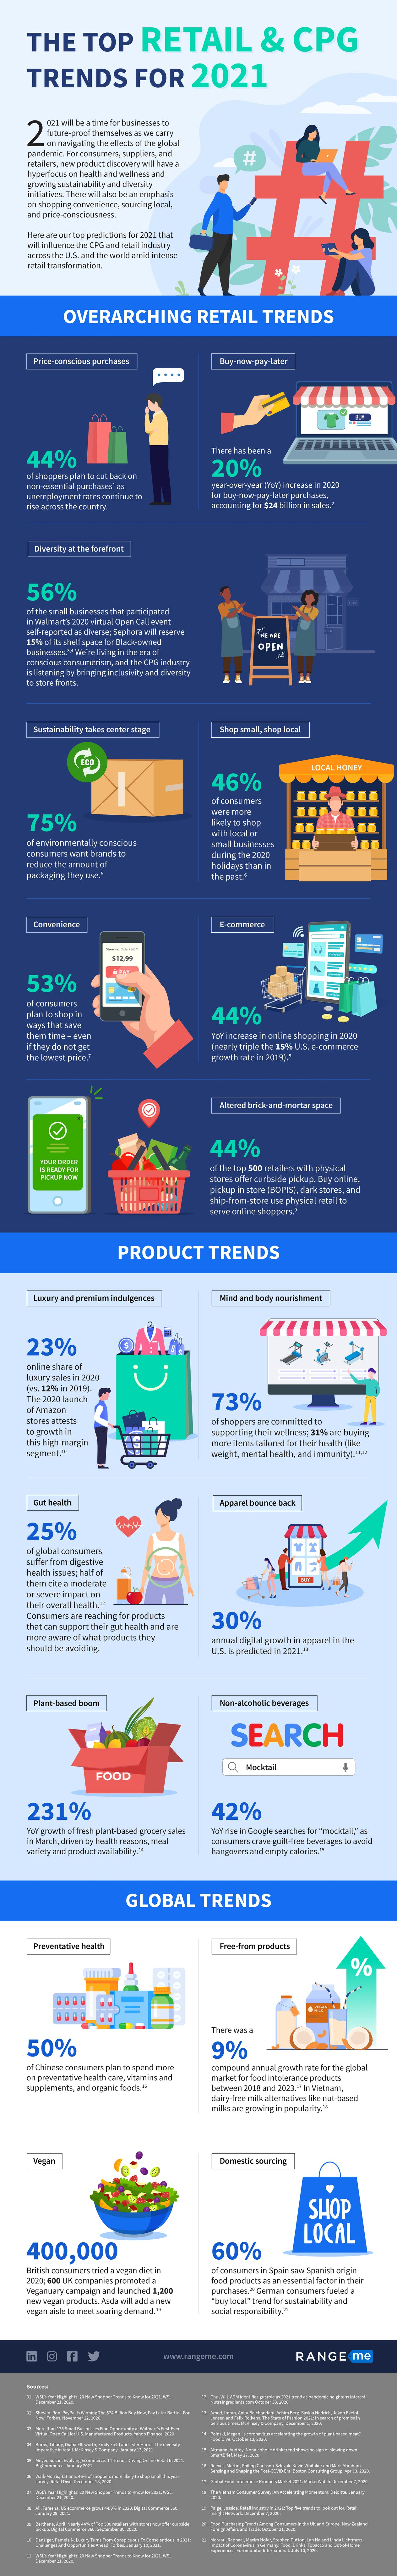 2021 CPG and Retail Trends